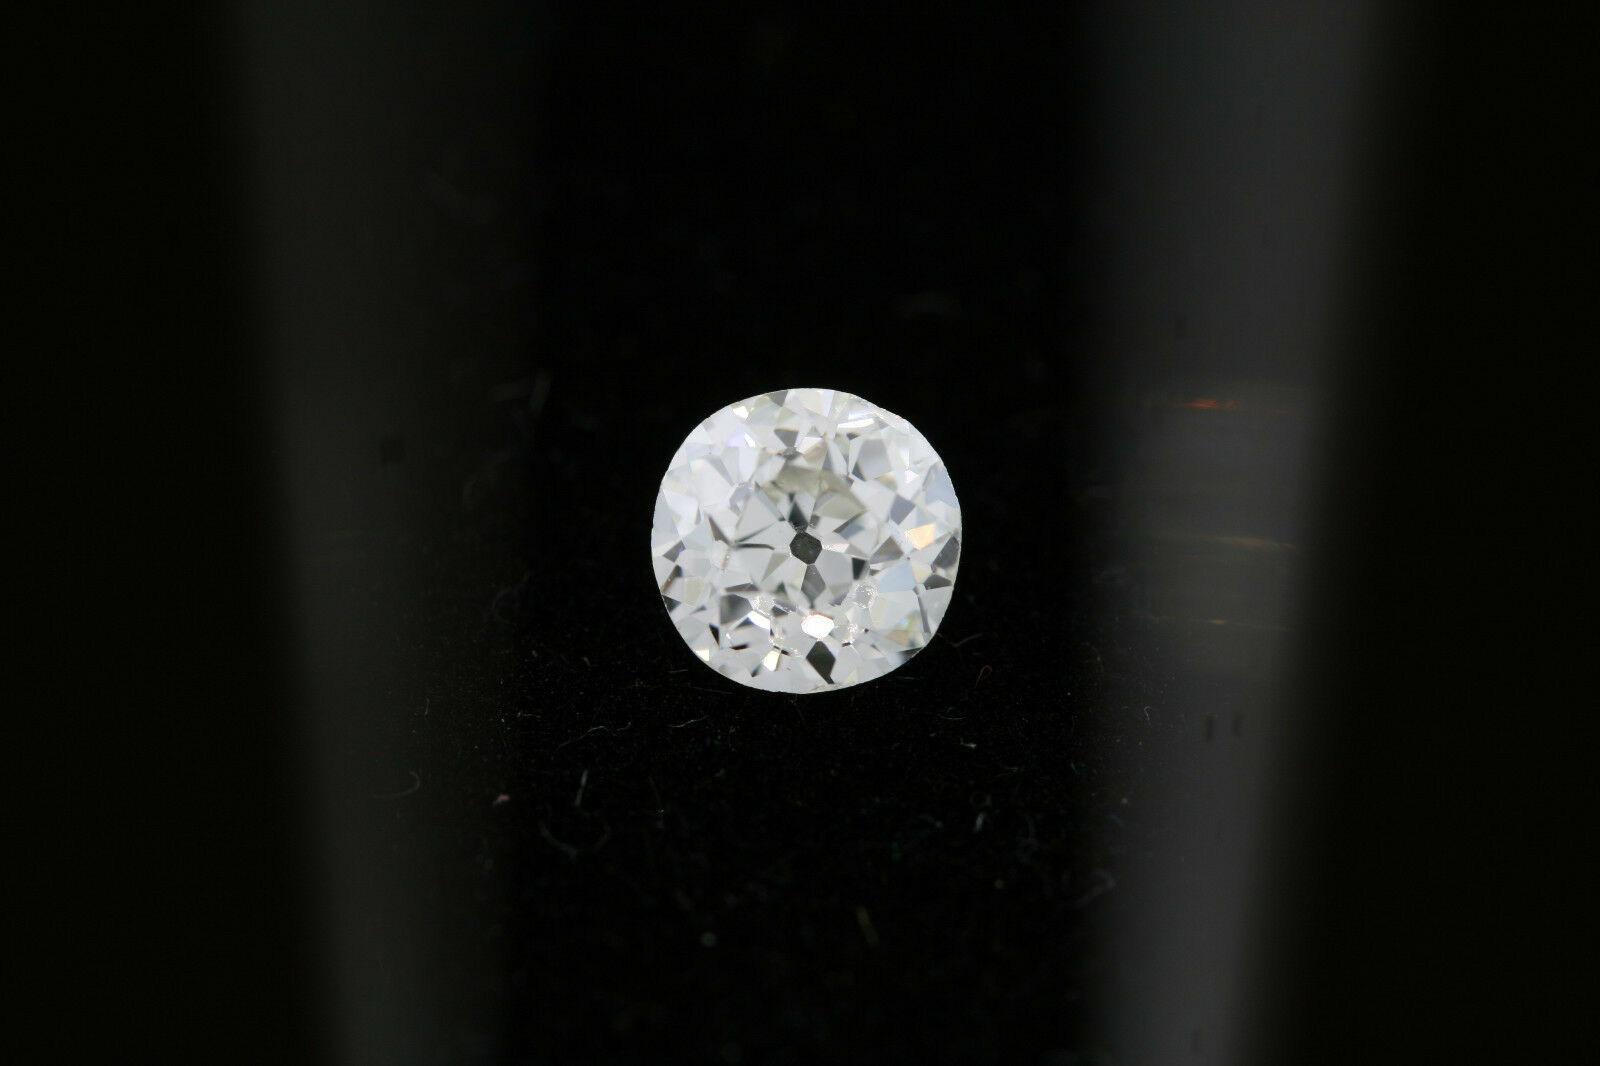 GIA .59ct Old Euro Cut Round Loose Diamond I color, VS1 clarity 5.17-5.39 x 3.2